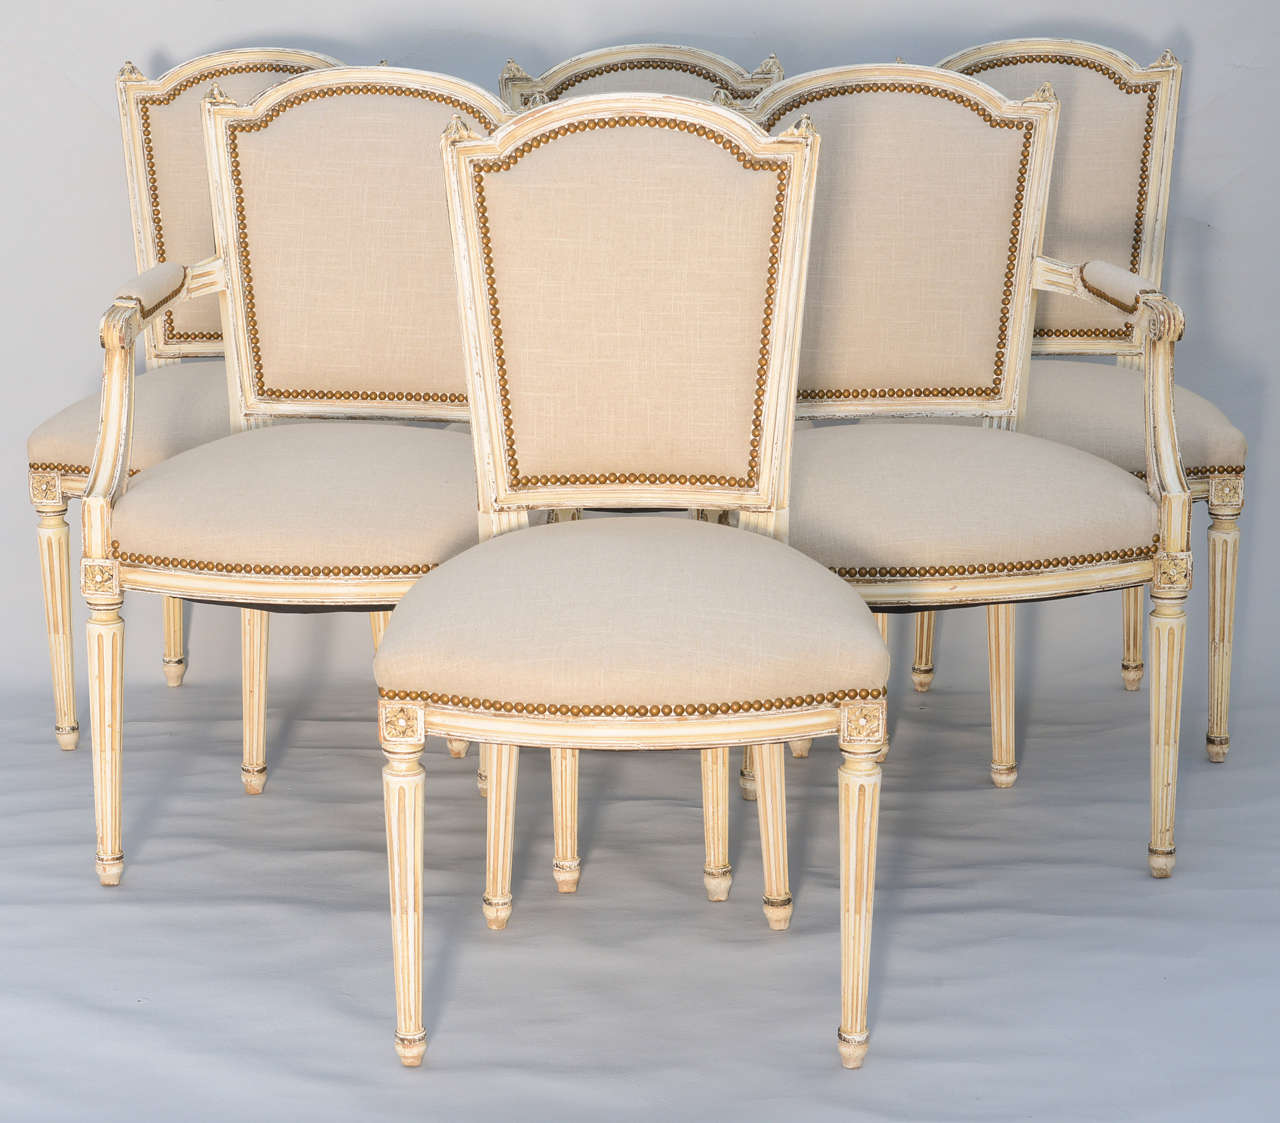 Merveilleux Set Of 6 Dining Room Chairs (two Armchairs And Four Side Chairs), Distressed